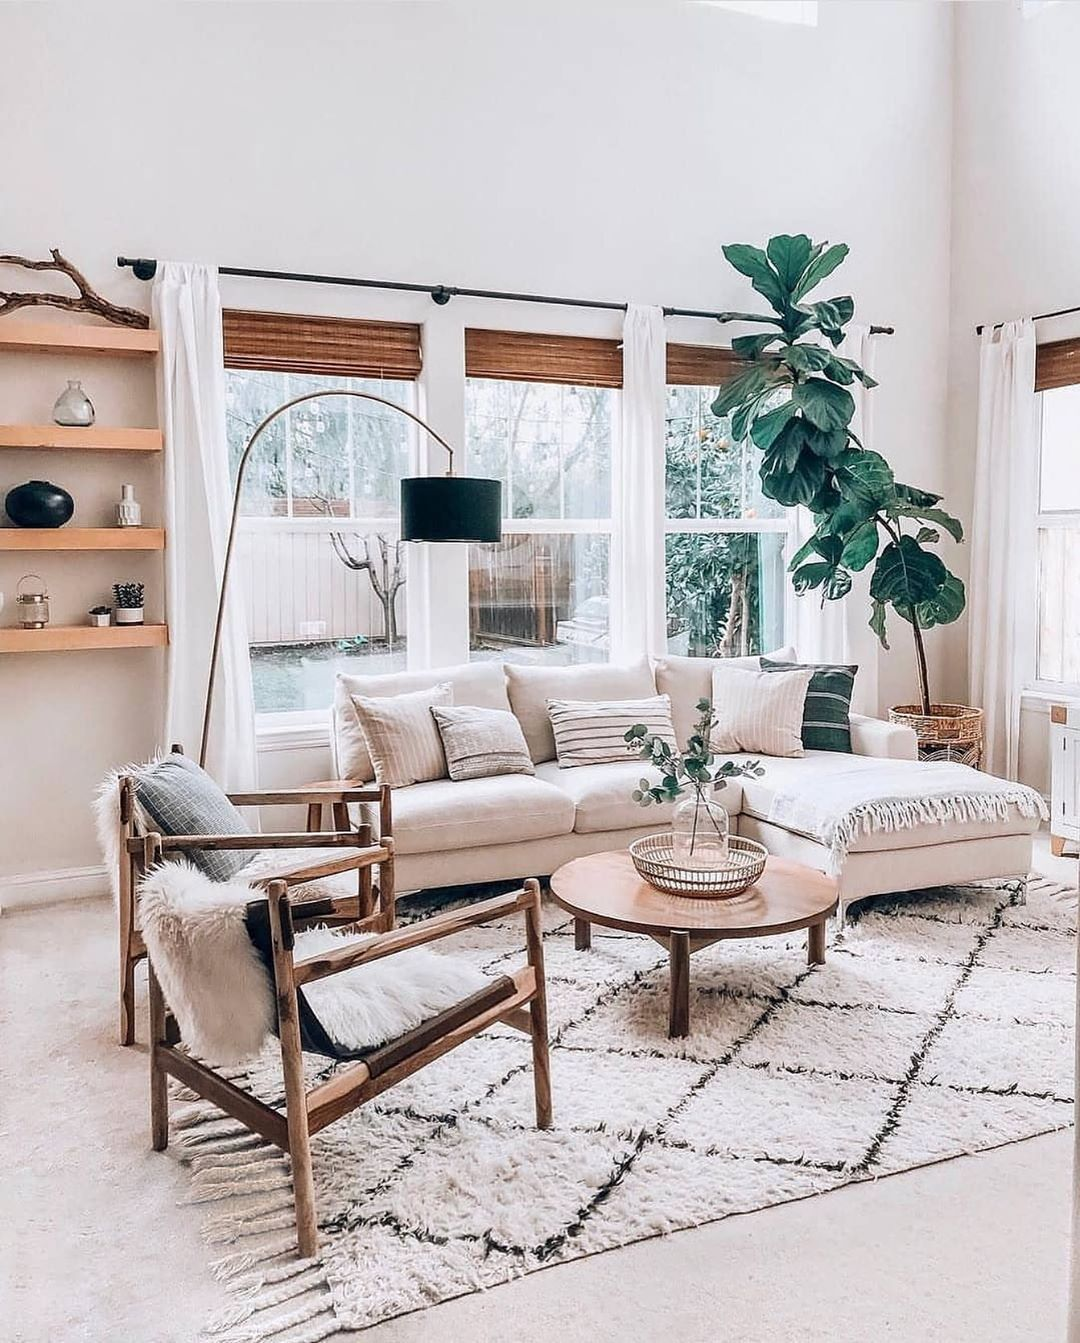 Great Ideas for Beginners in Living Room Decoration 2019 - Page 24 of 39 - My Blog